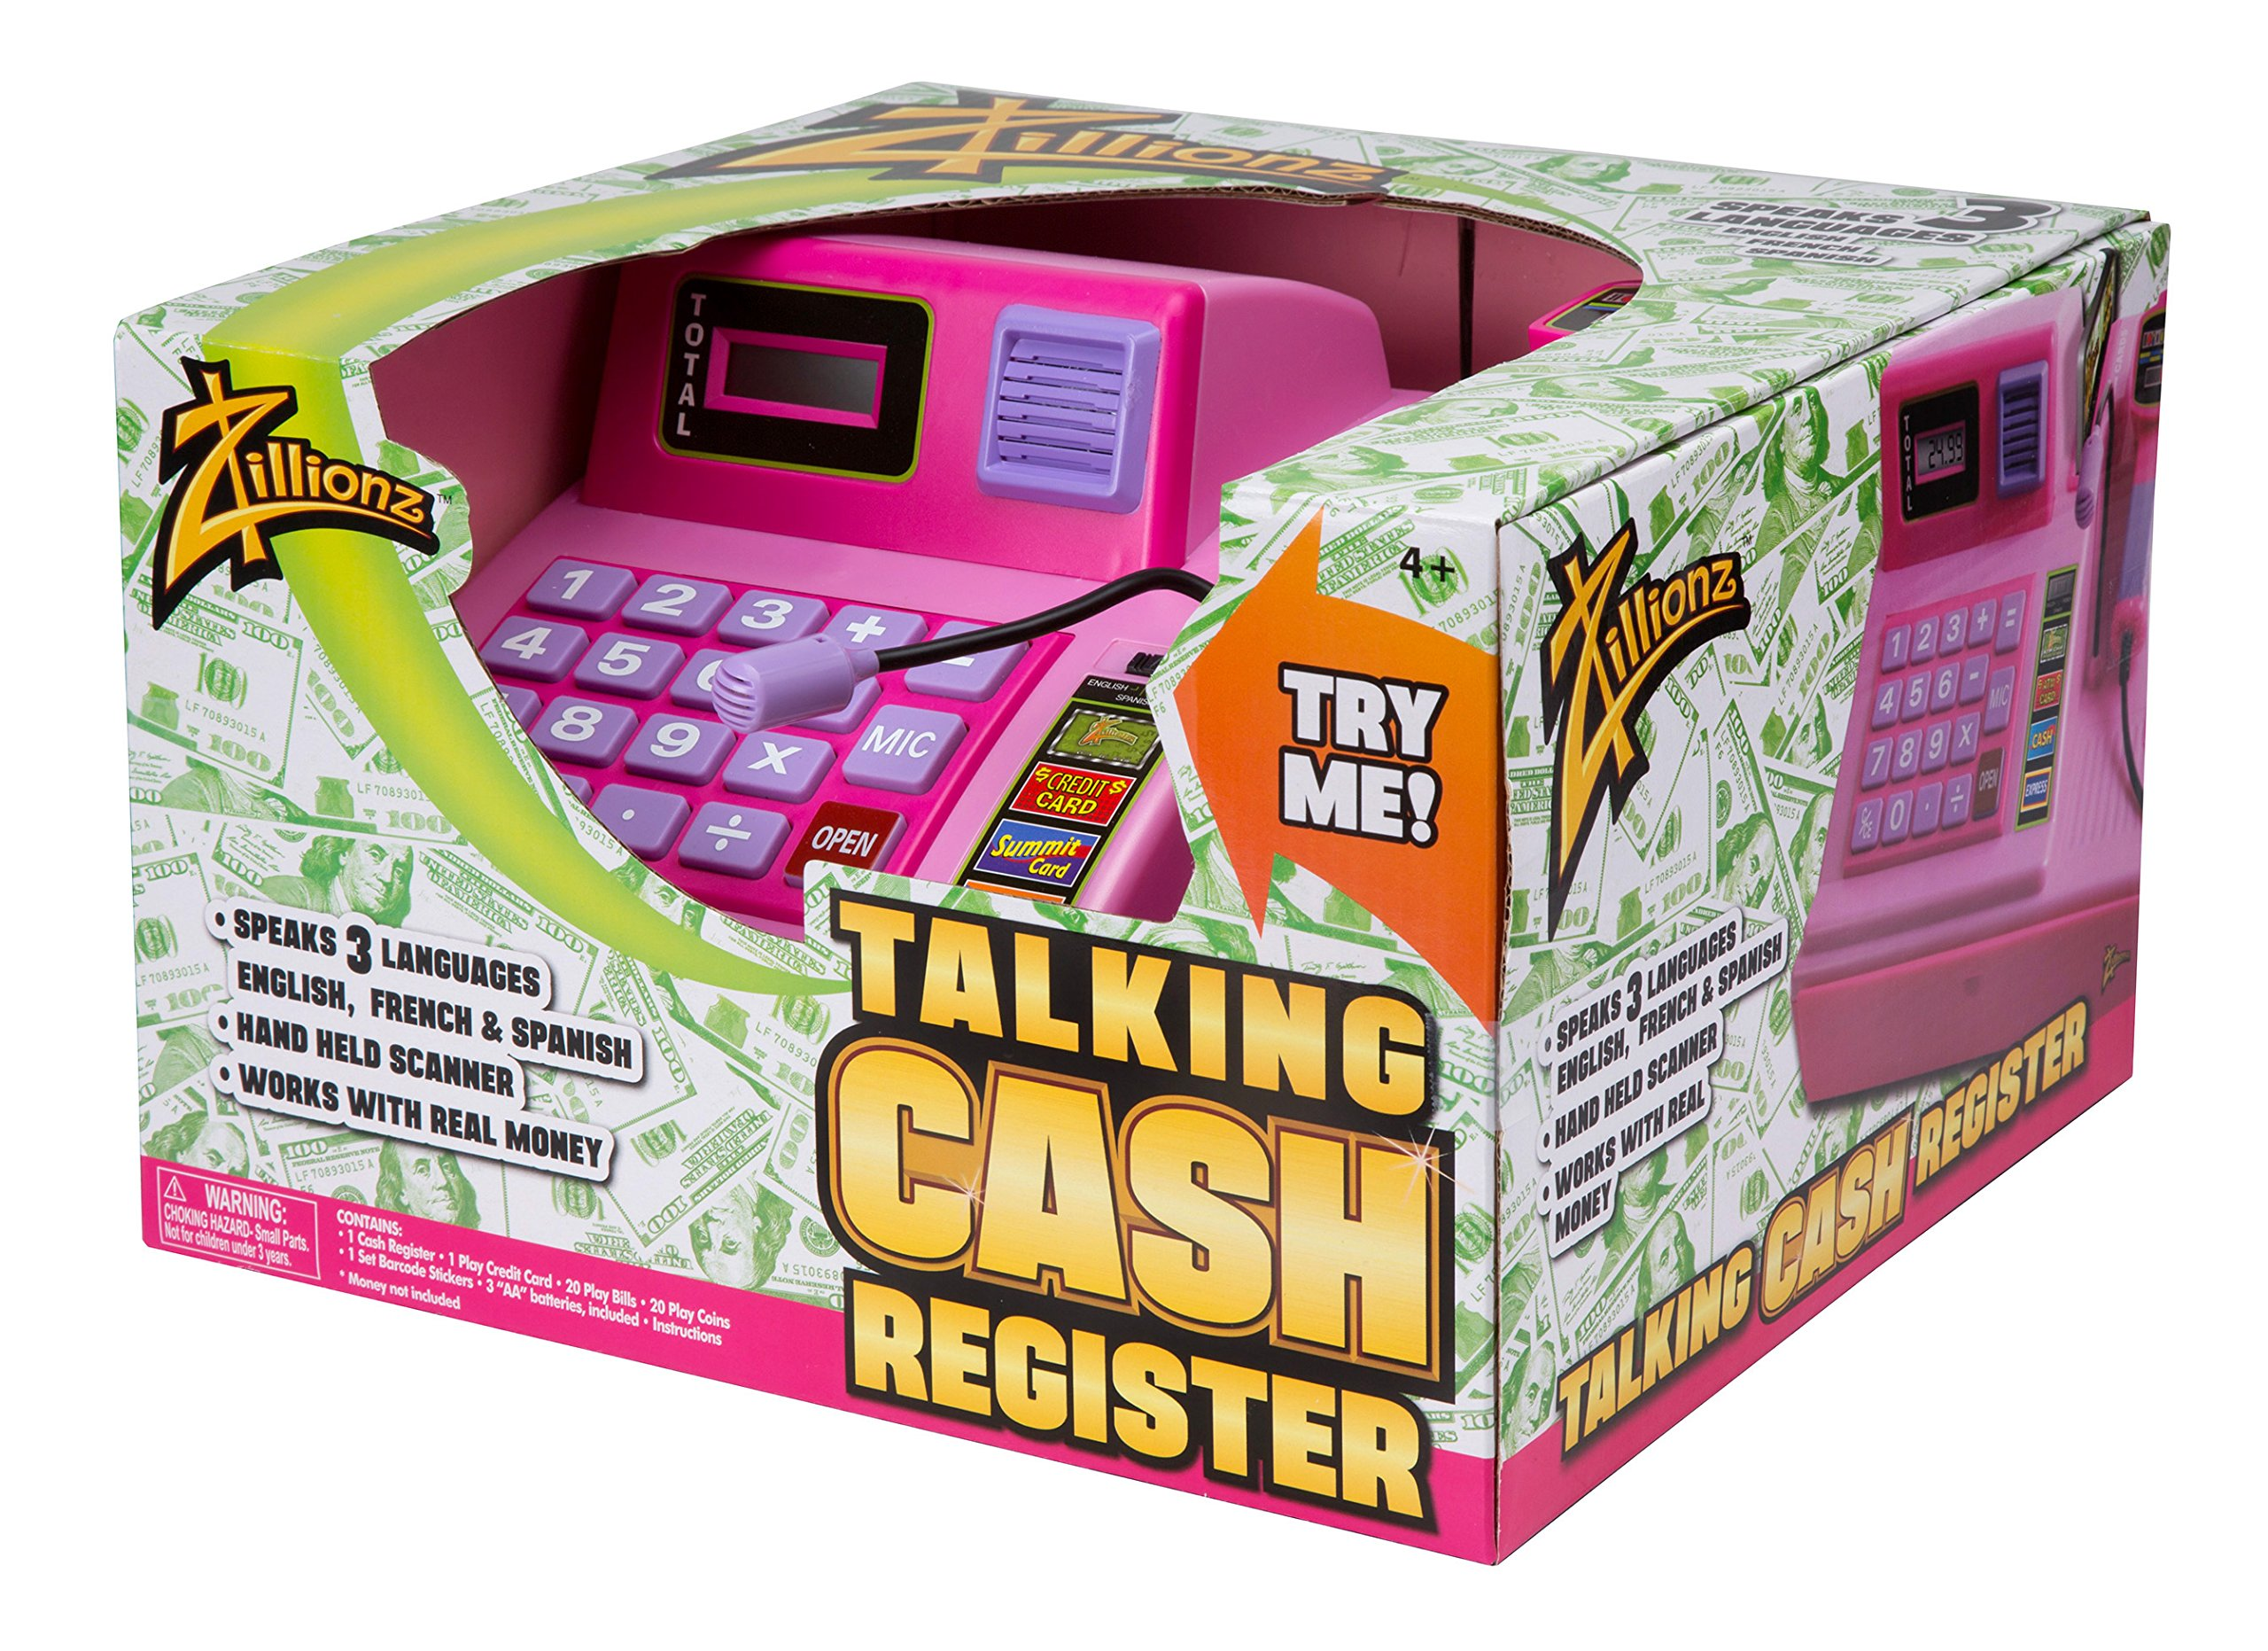 Zillionz Talking Cash Register - Pink